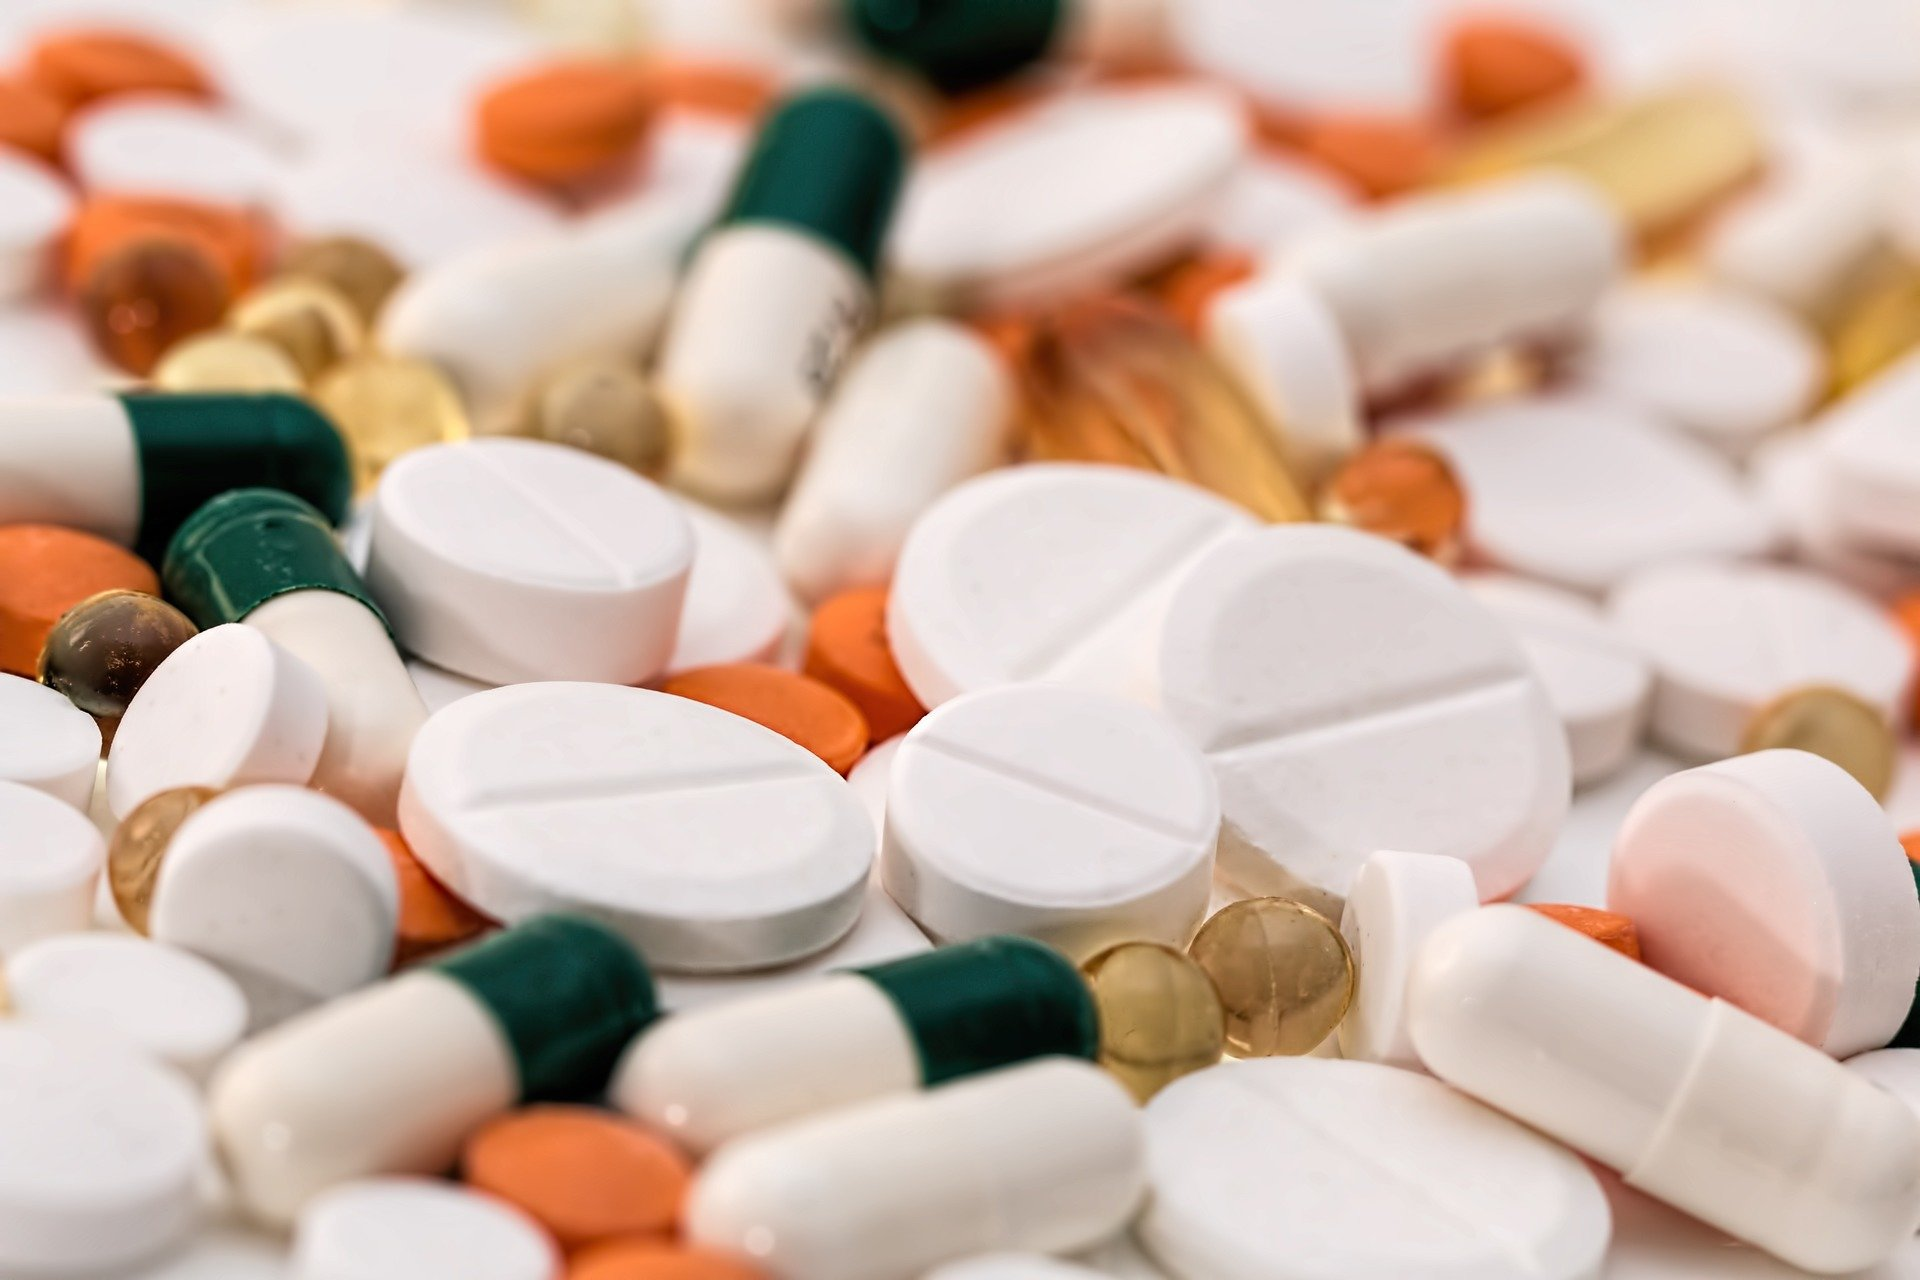 Antibiotic prescribing influenced by team dynamics within hospitals